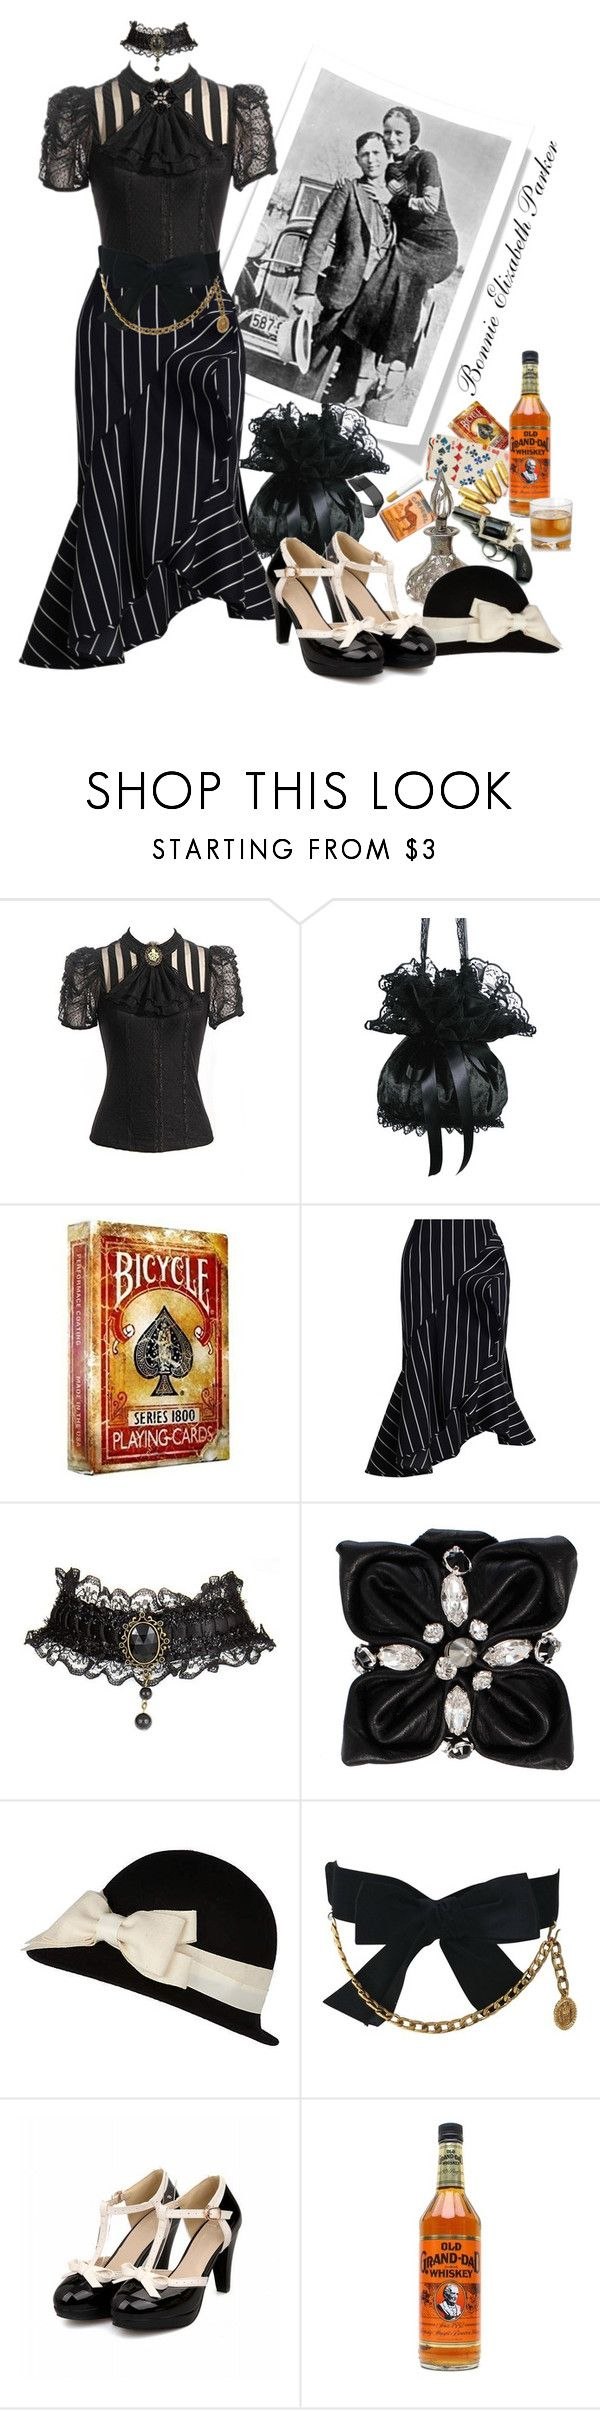 """""""Bonnie Elizabeth Parker"""" by gypsy-jo ❤ liked on Polyvore featuring Bonnie Clyde, Bandolera, Zimmermann, Dsquared2, Steuben, River Island, Chanel and Coffee Shop"""